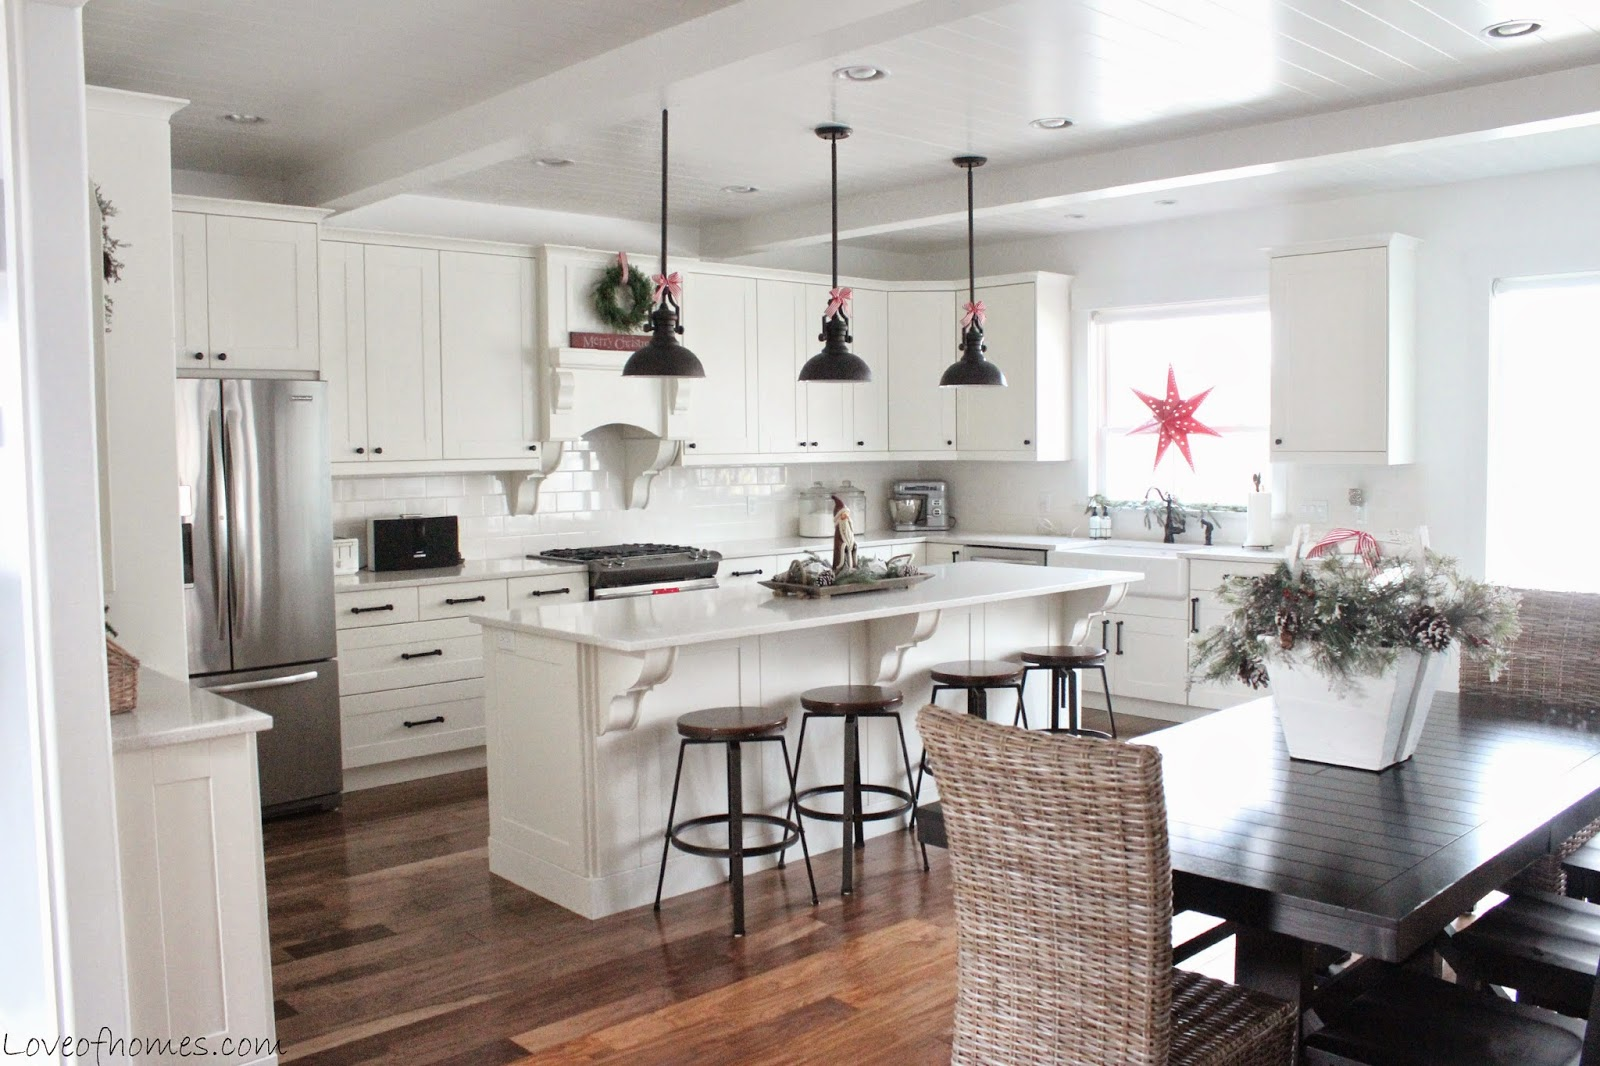 Classic Kitchen from Love of Homes